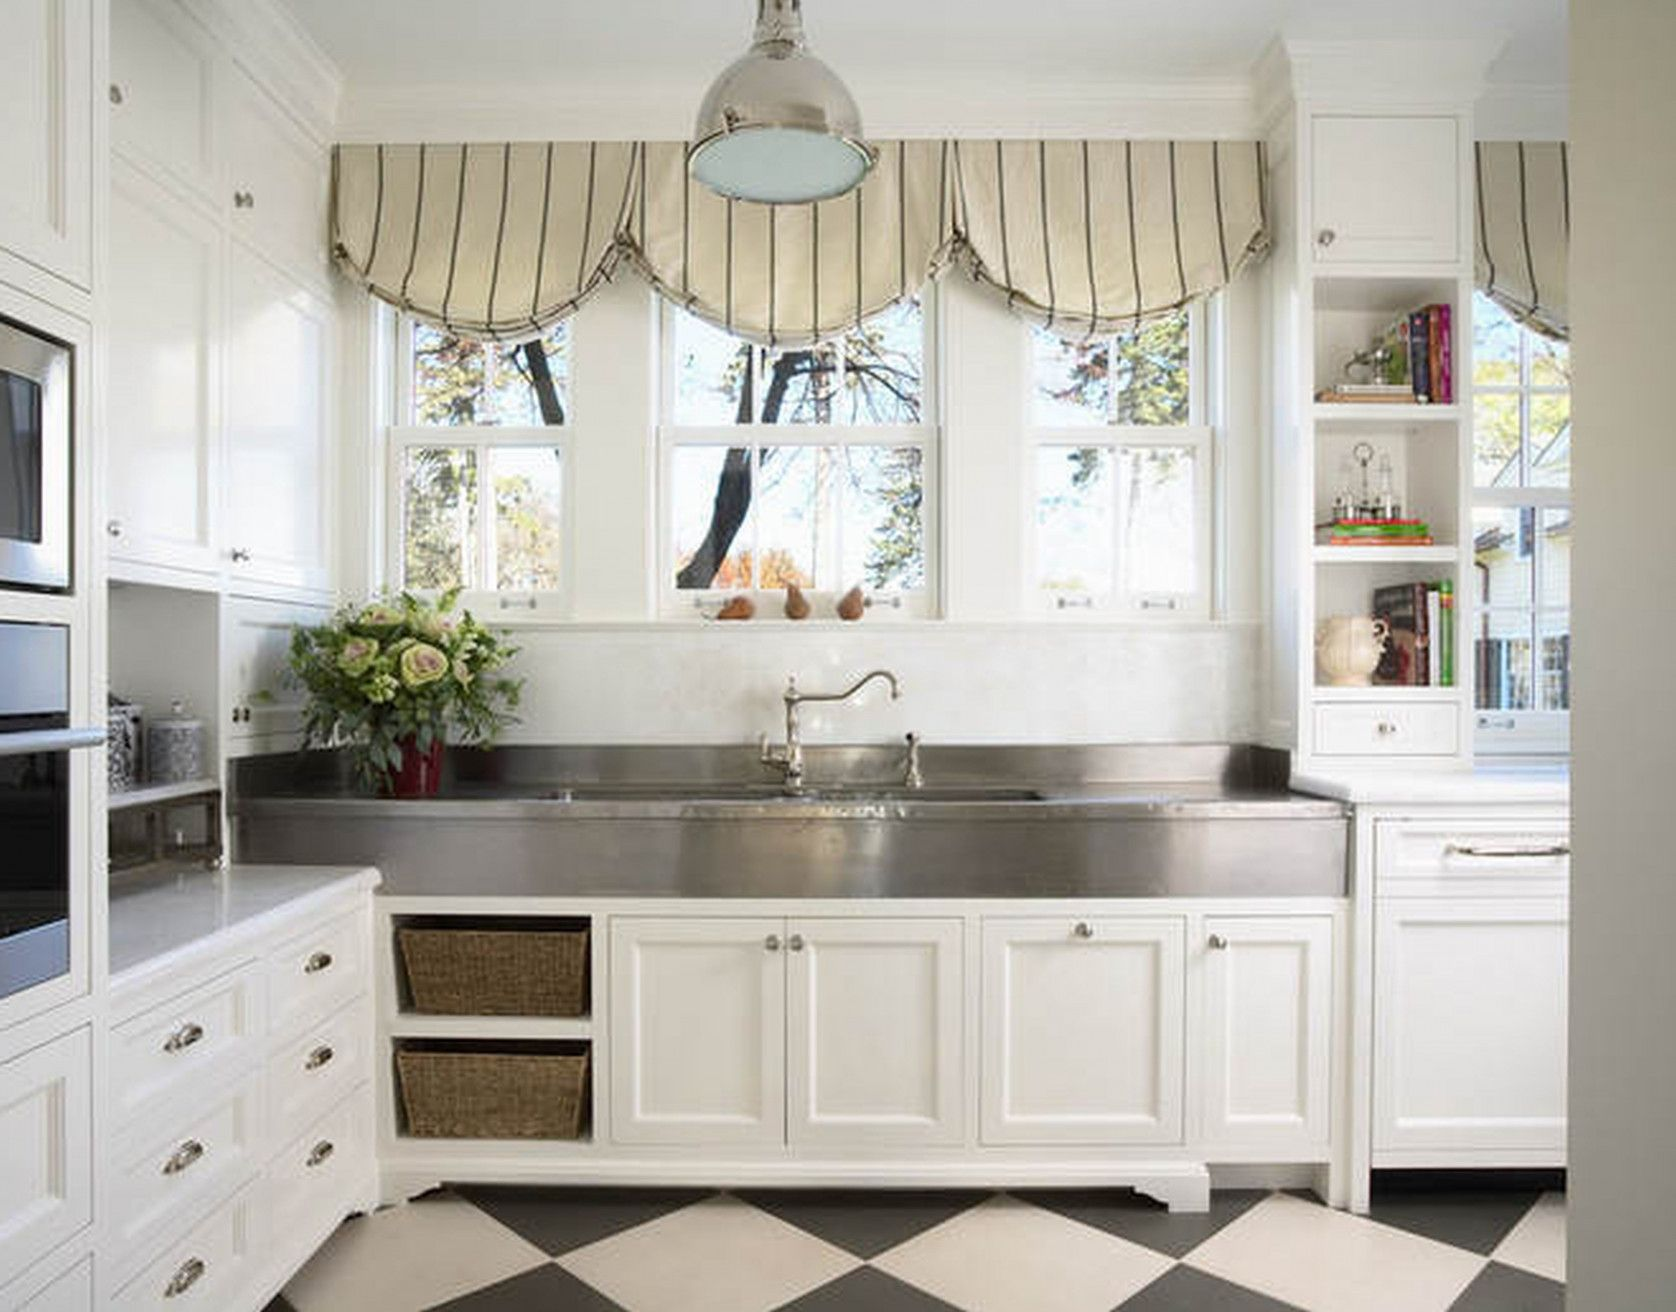 77+ Tuscan Style Cabinet Hardware - Best Kitchen Cabinet Ideas Check ...